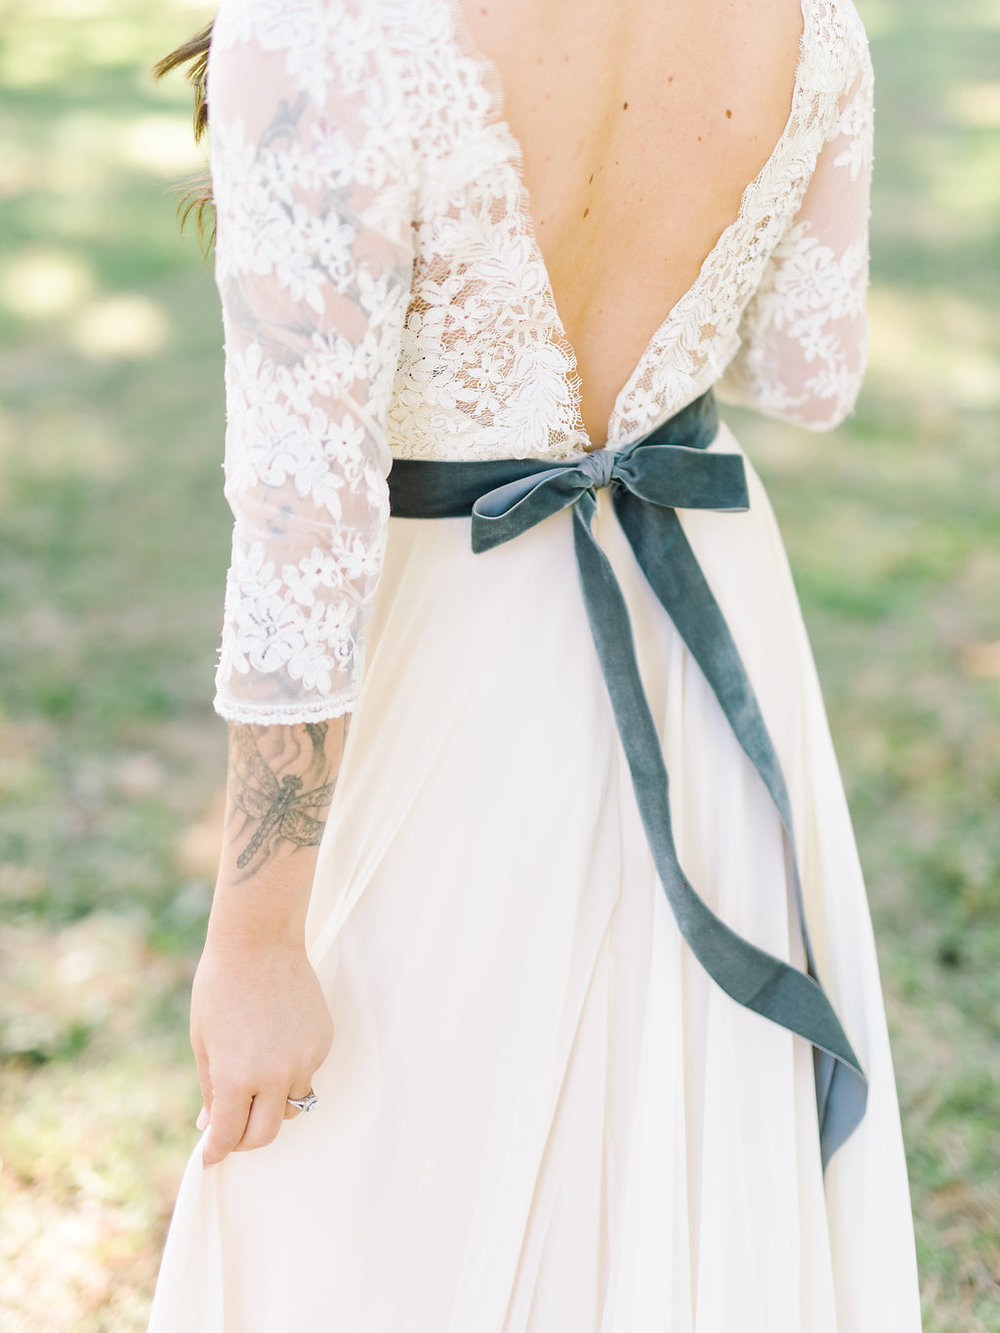 rach-loves-troy-photography-atlanta-wedding-pineola-farms-wedding-cat-wedding-rebecca-shoneveld-vivian-sage-ivory-and-beau-bridal-boutique-savannah-wedding-dresses-savannah-bridal-boutique-savannah-bridal-gowns-savannah-florist-georgia-bridal-8.jpg